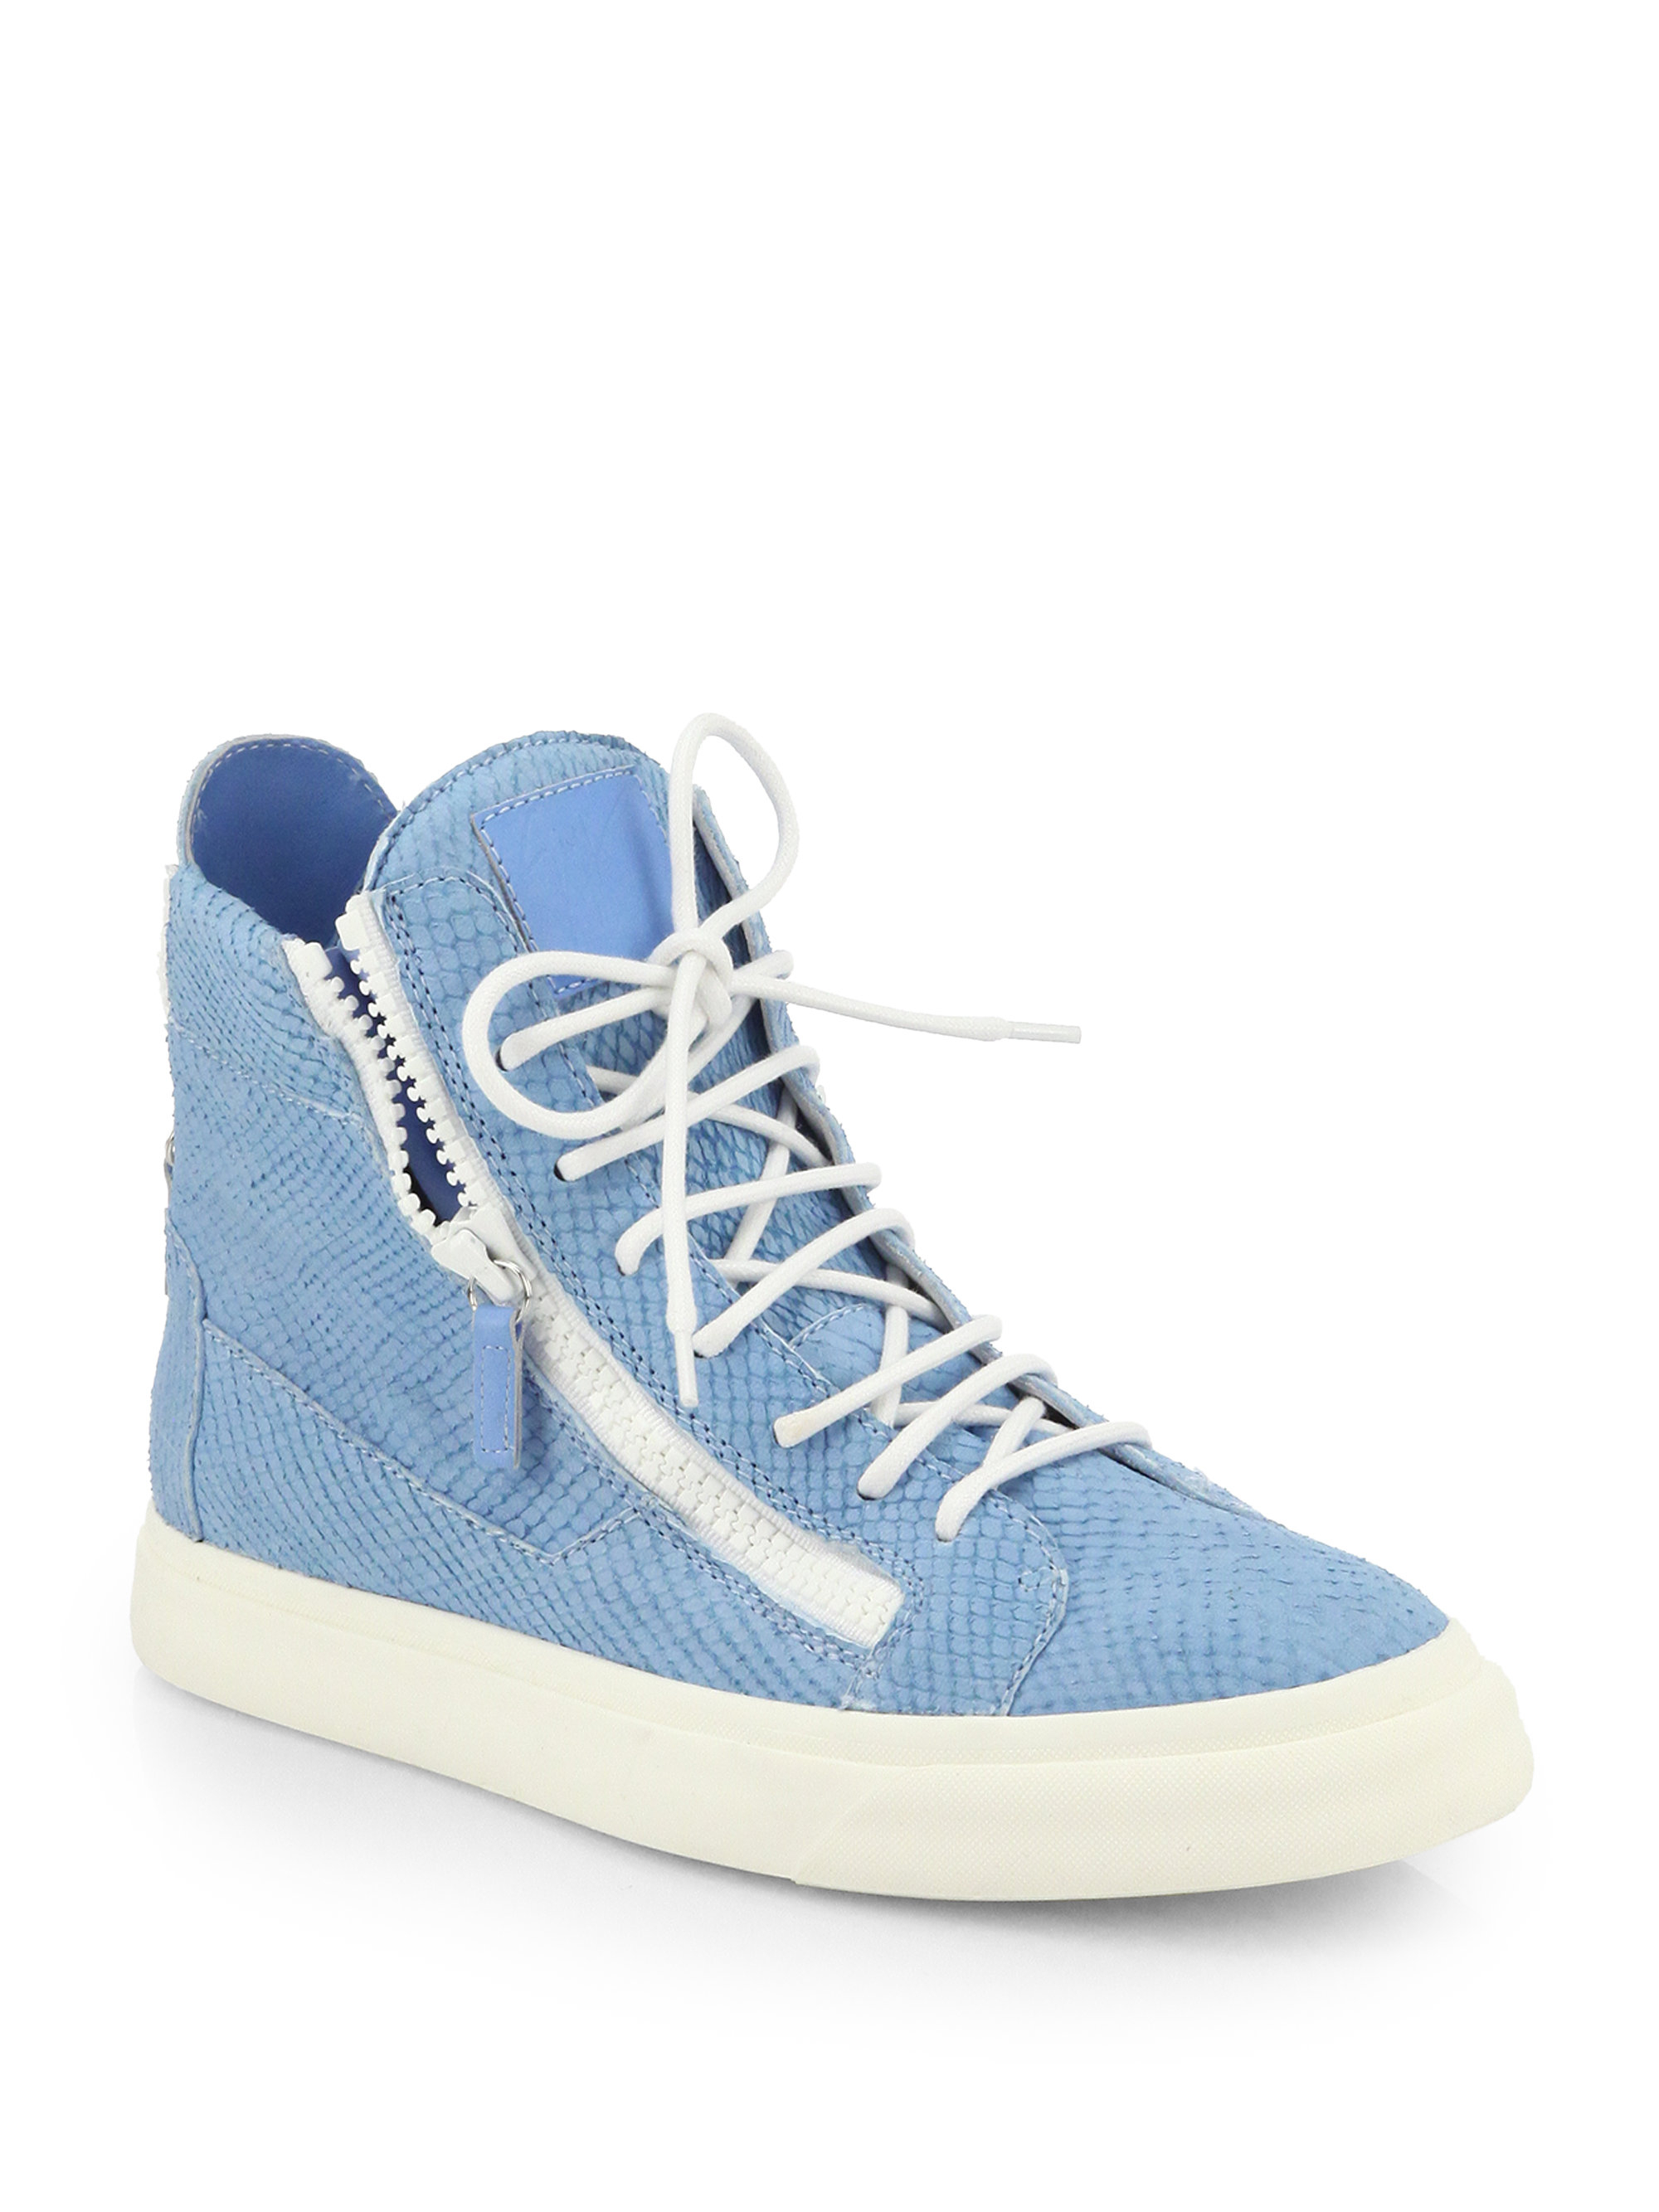 4c79a97b6a2 Lyst - Giuseppe Zanotti Snakeskin-Embossed Leather High-Top Sneakers ...